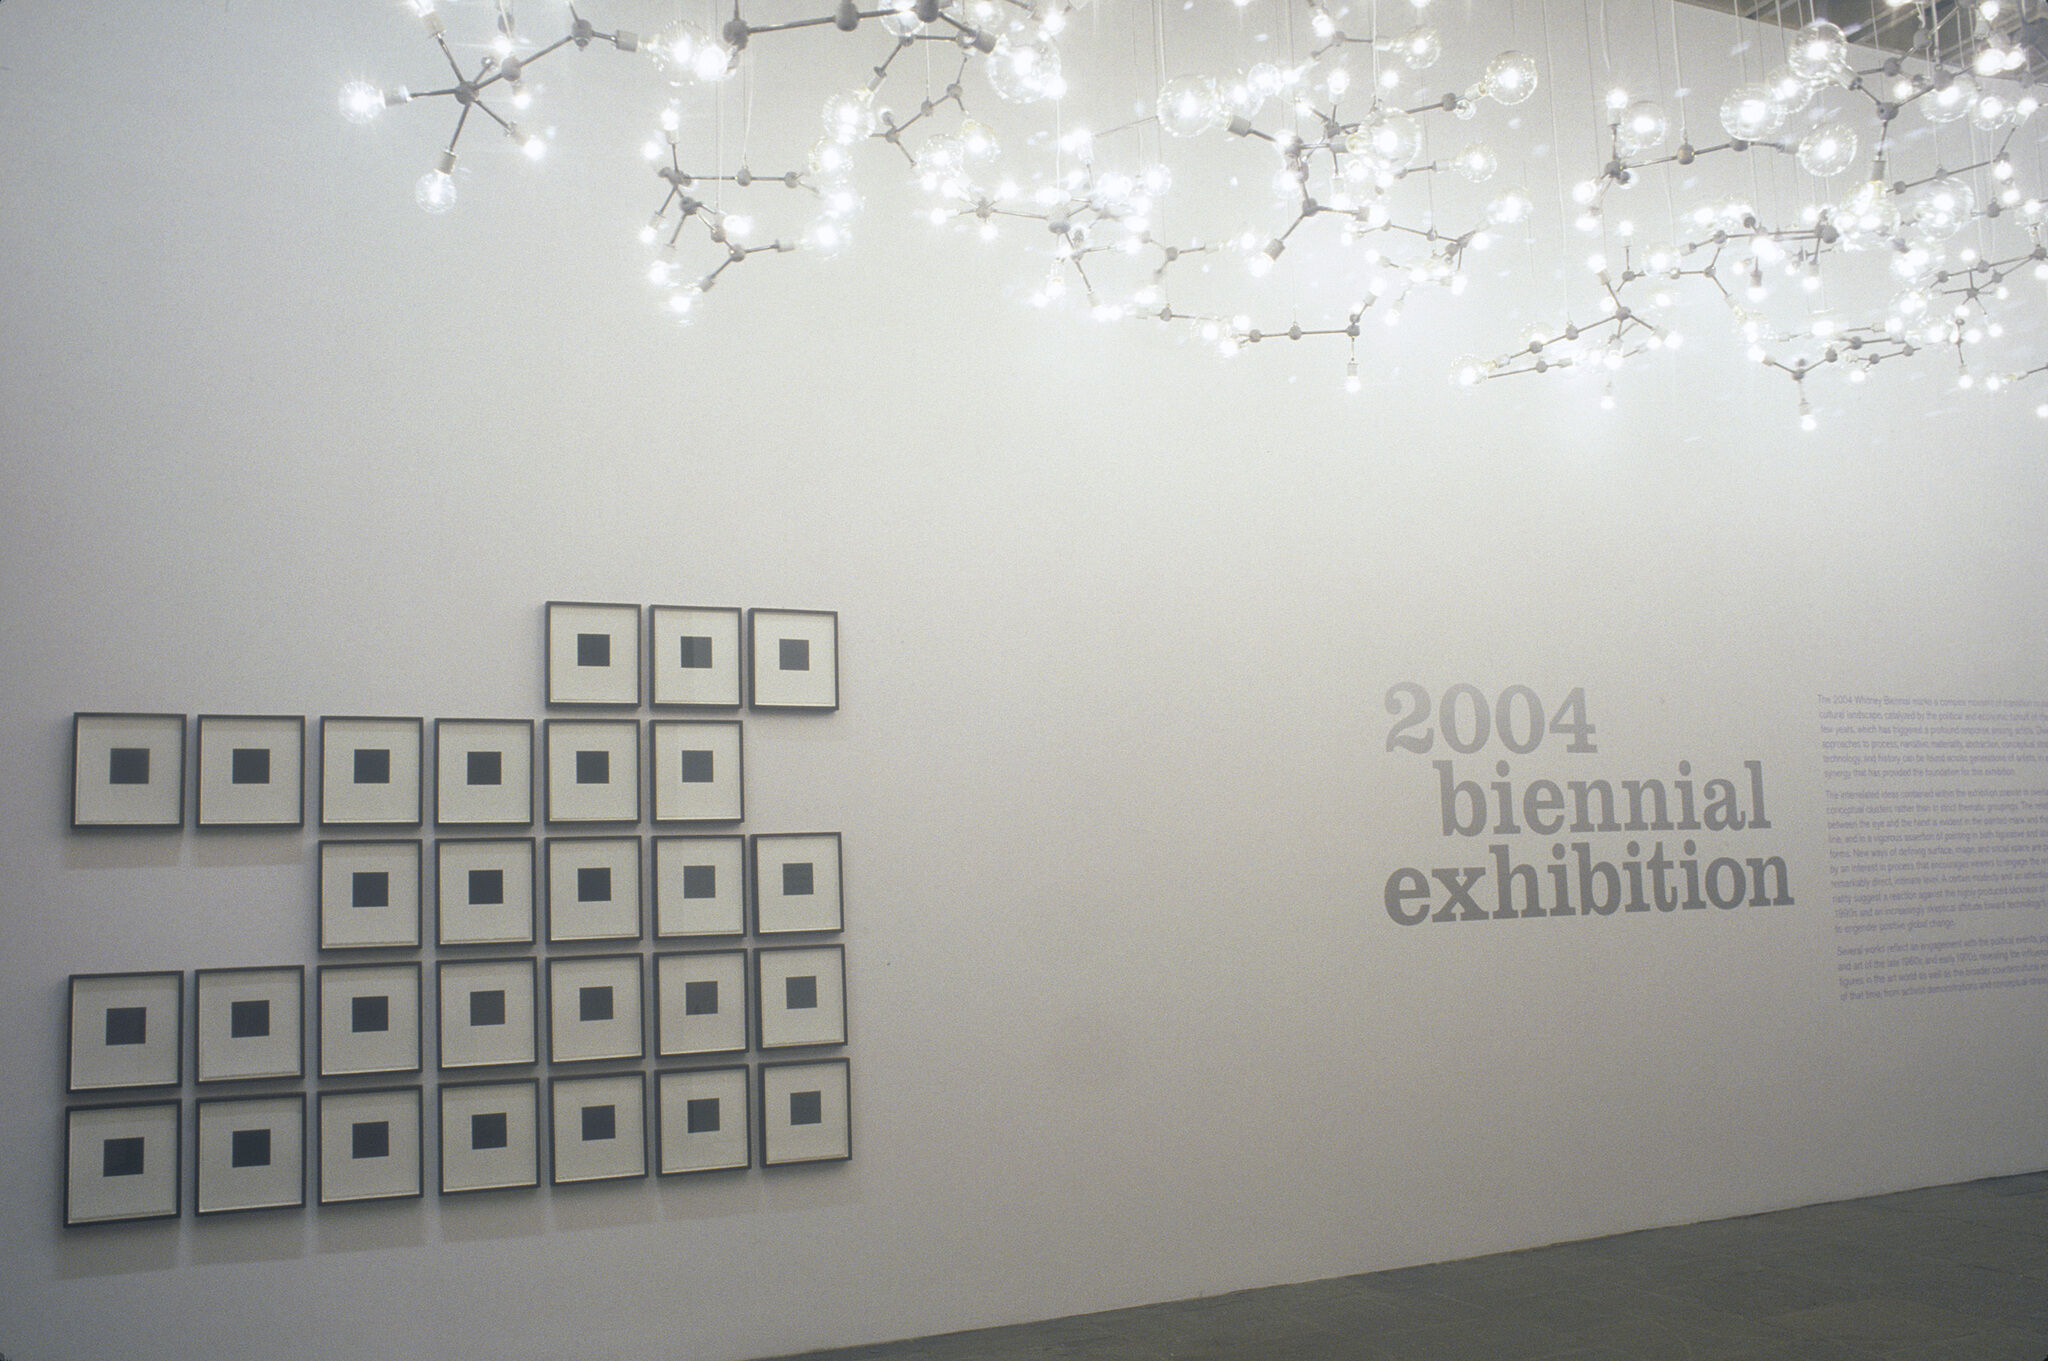 Bright lightbulbs hanging from the ceiling along with prints of black squares displayed next to wall text for the 2004 Biennial Exhibition.